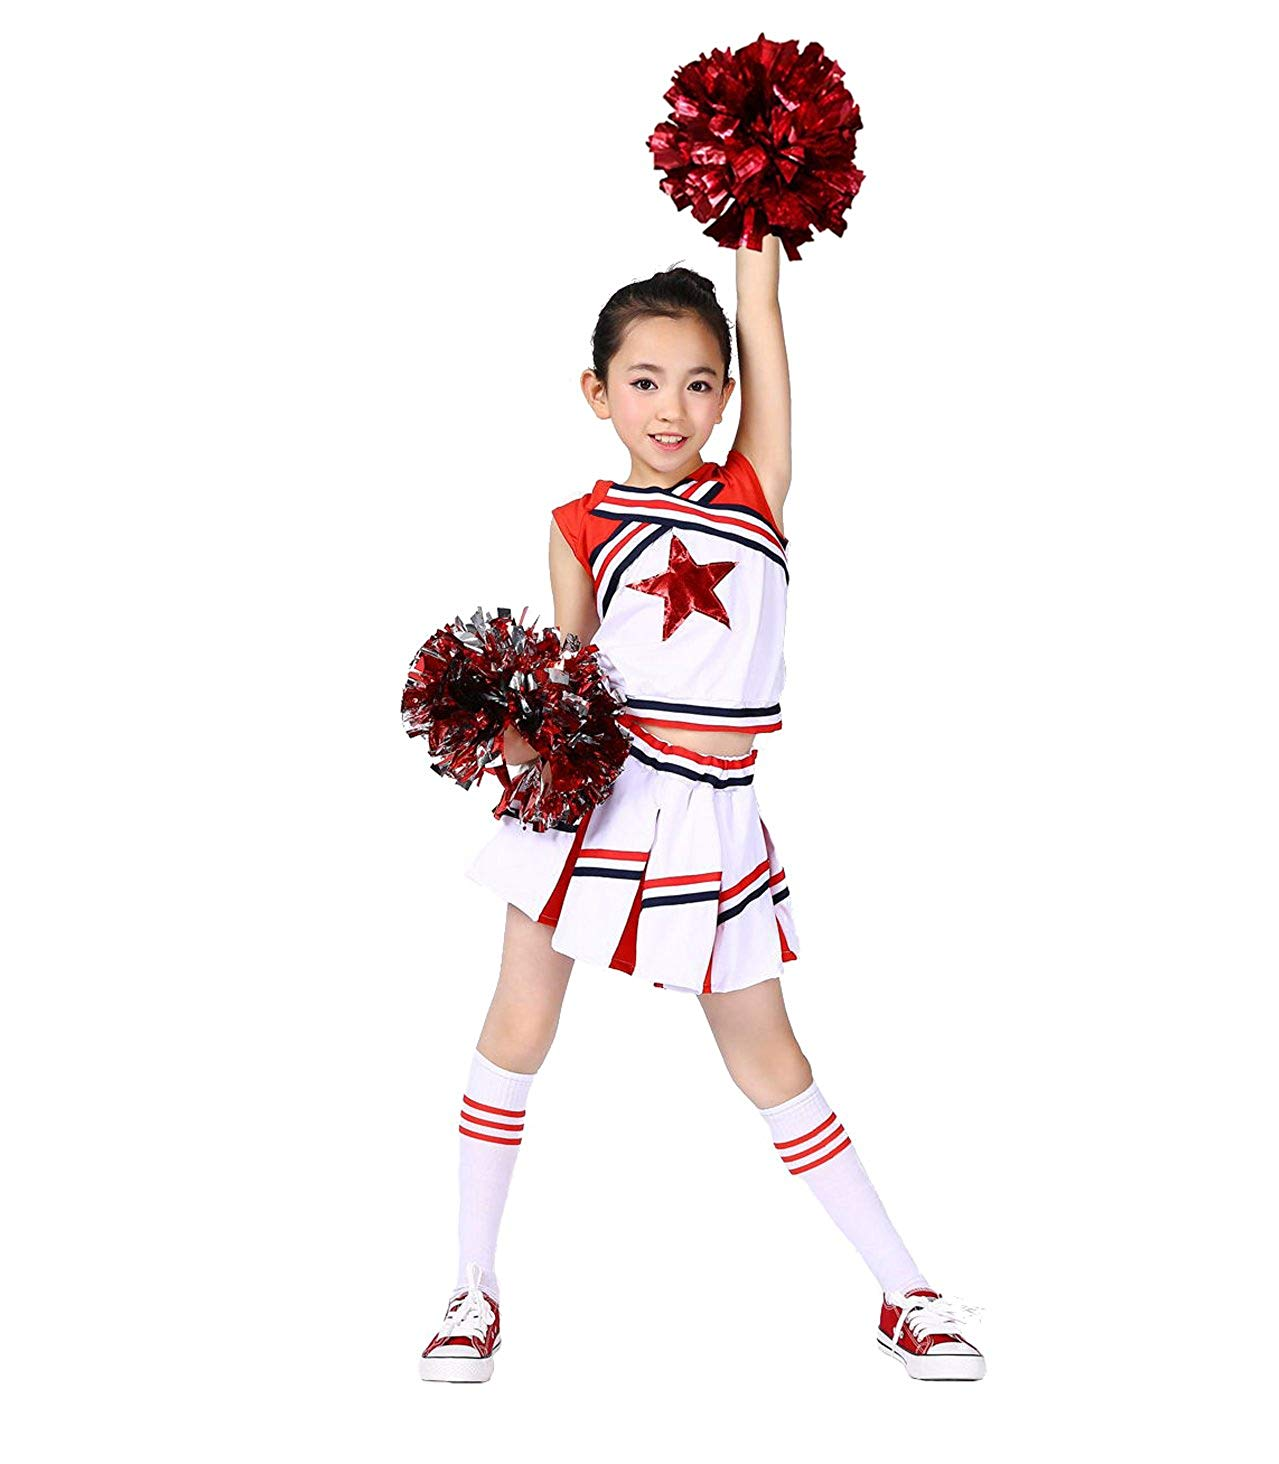 76e0095cc Get Quotations · Girls Cheerleader Uniform Costume Youth Red Star Cheer  Outfit Match Pompoms